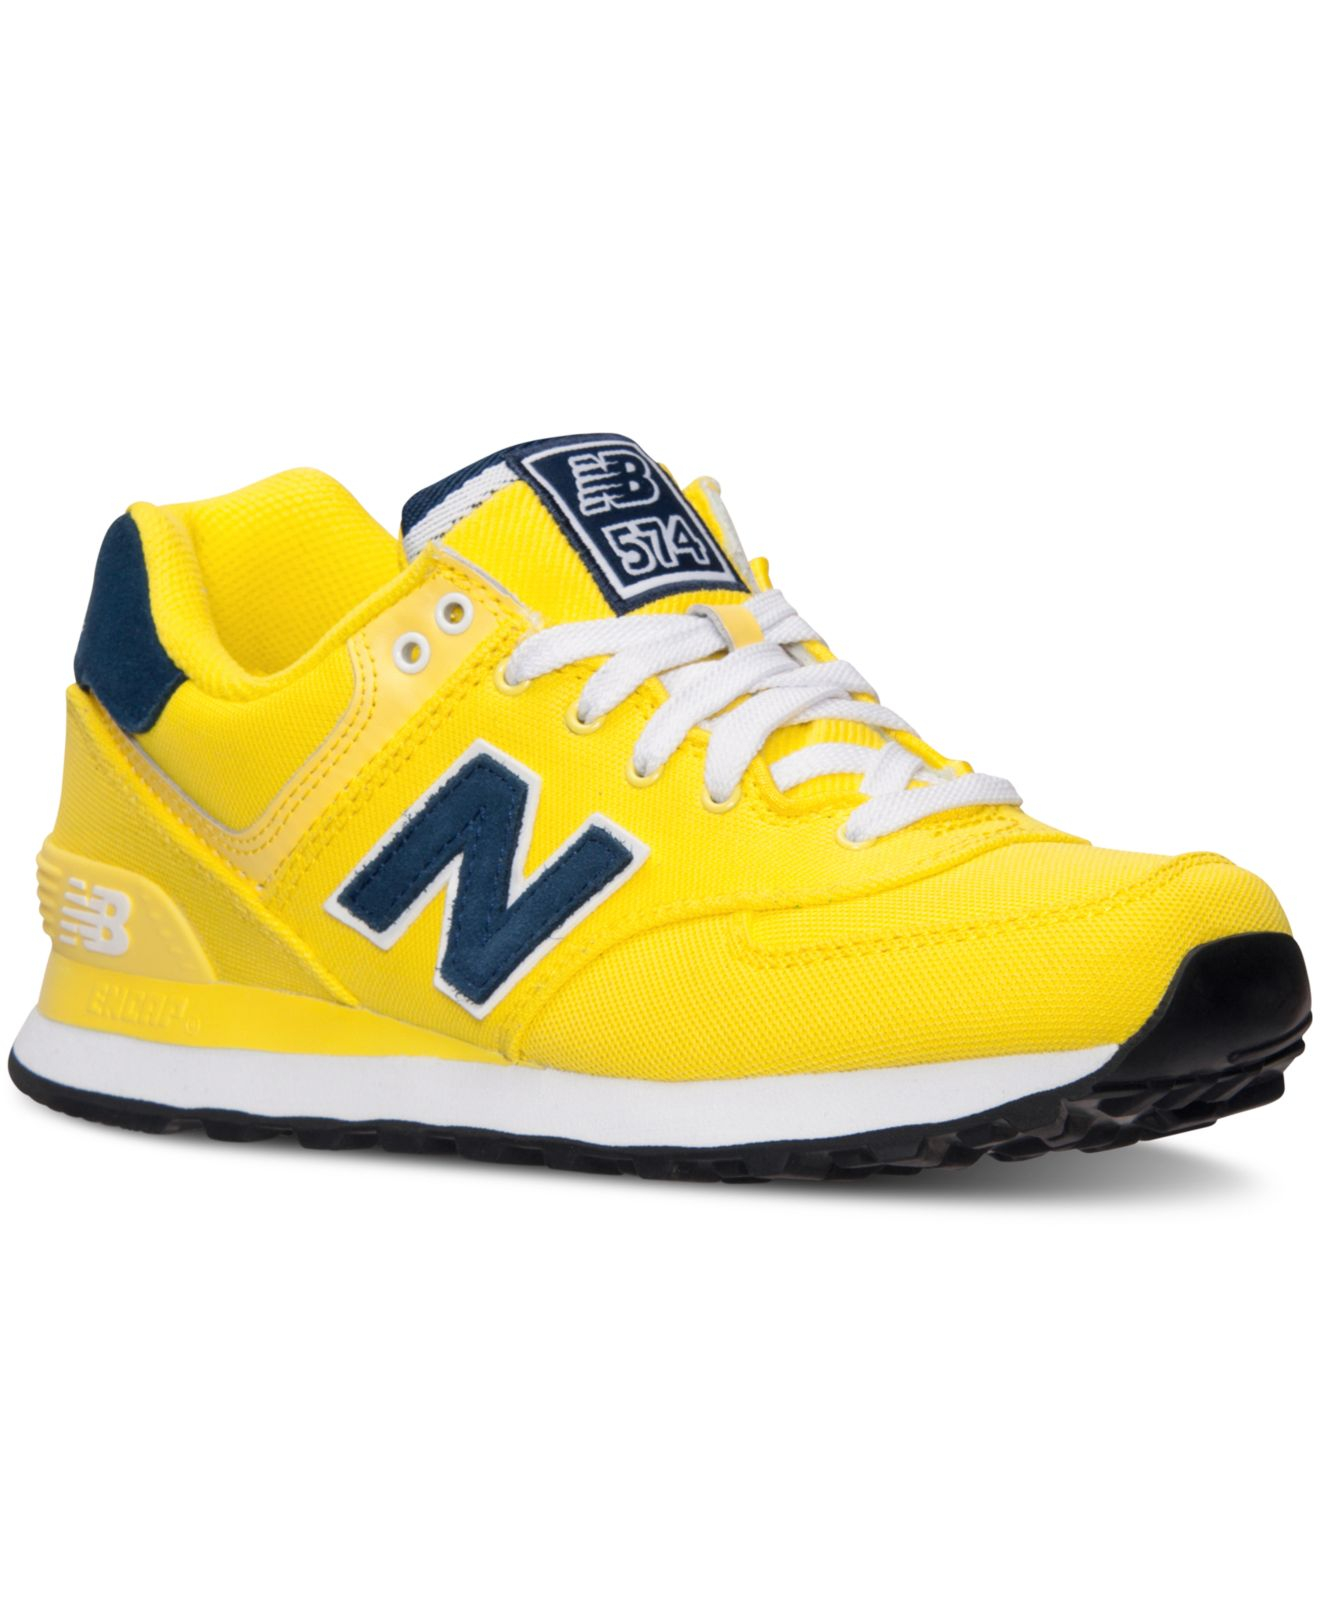 new balance 574 pink yellow philly diet doctor dr jon. Black Bedroom Furniture Sets. Home Design Ideas